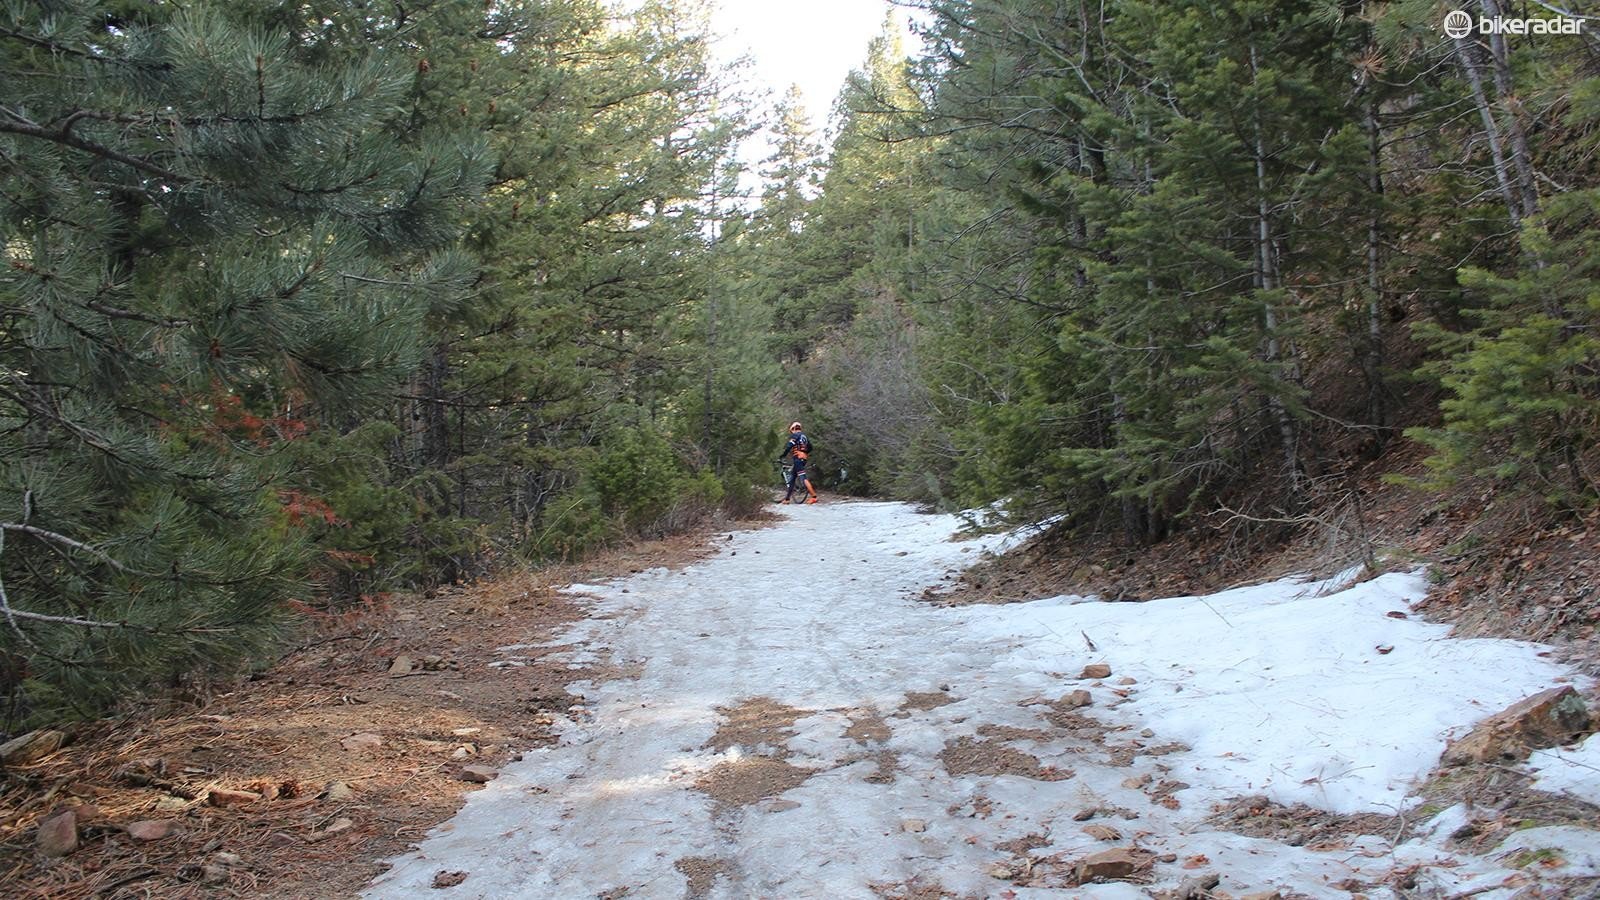 The majority of the off-road climb was rideable on a gravel or cyclocross bike, though there were a few tricky spots